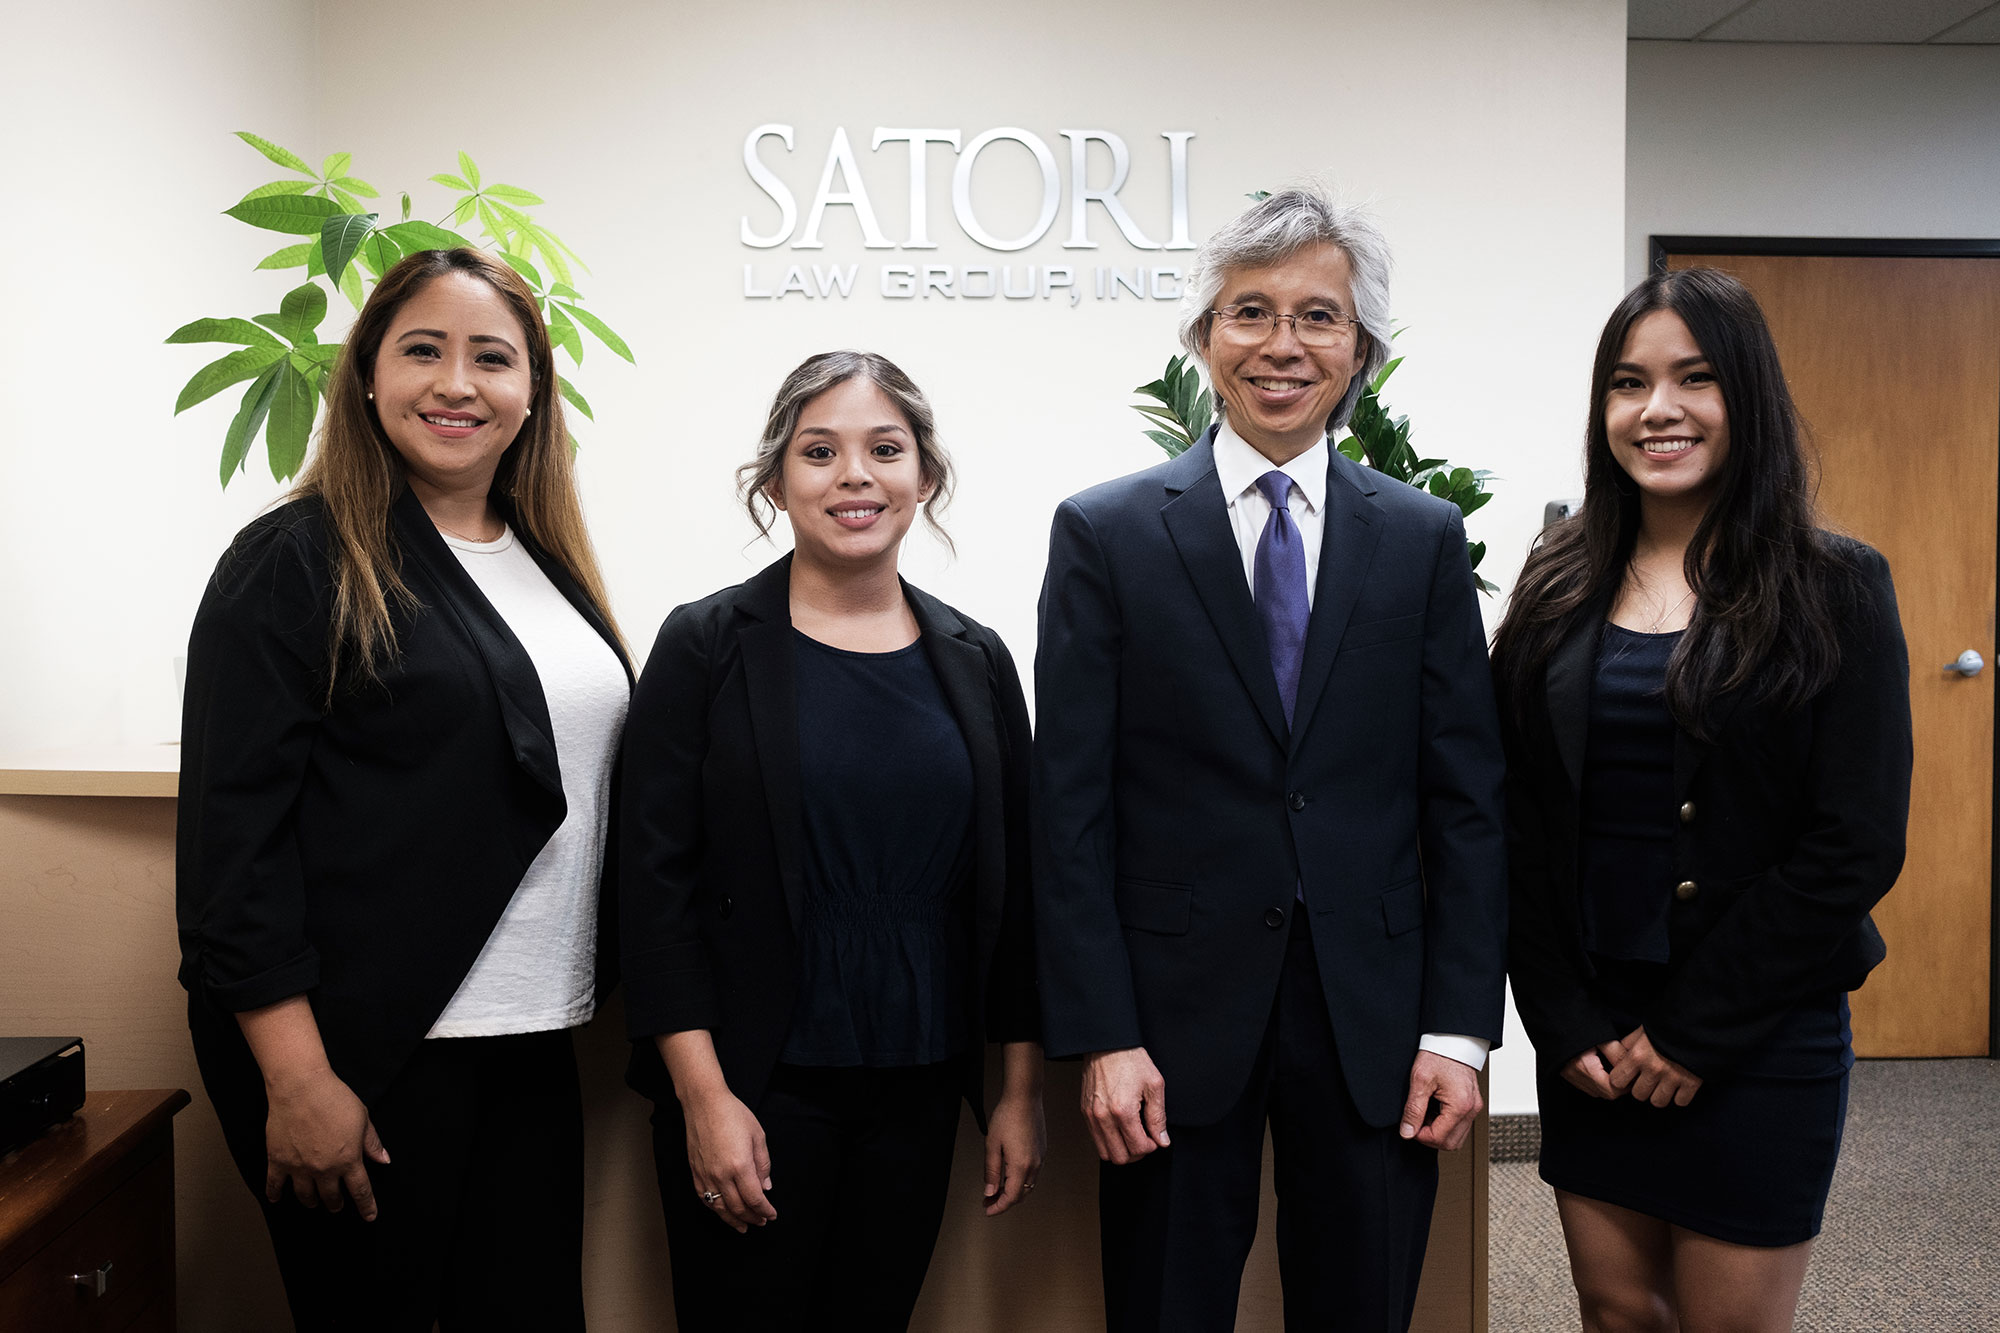 The Team at Satori Law Fountain Valley